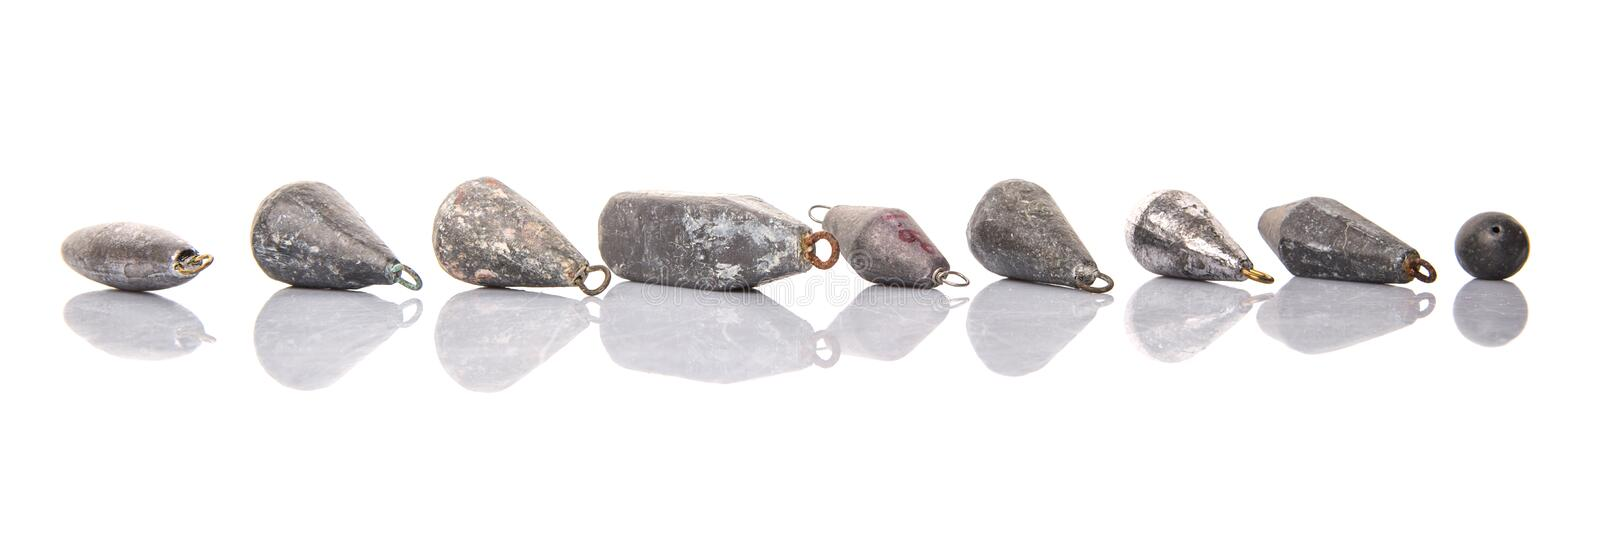 Group Of Fishing Sinker Or Knoch IV stock photography